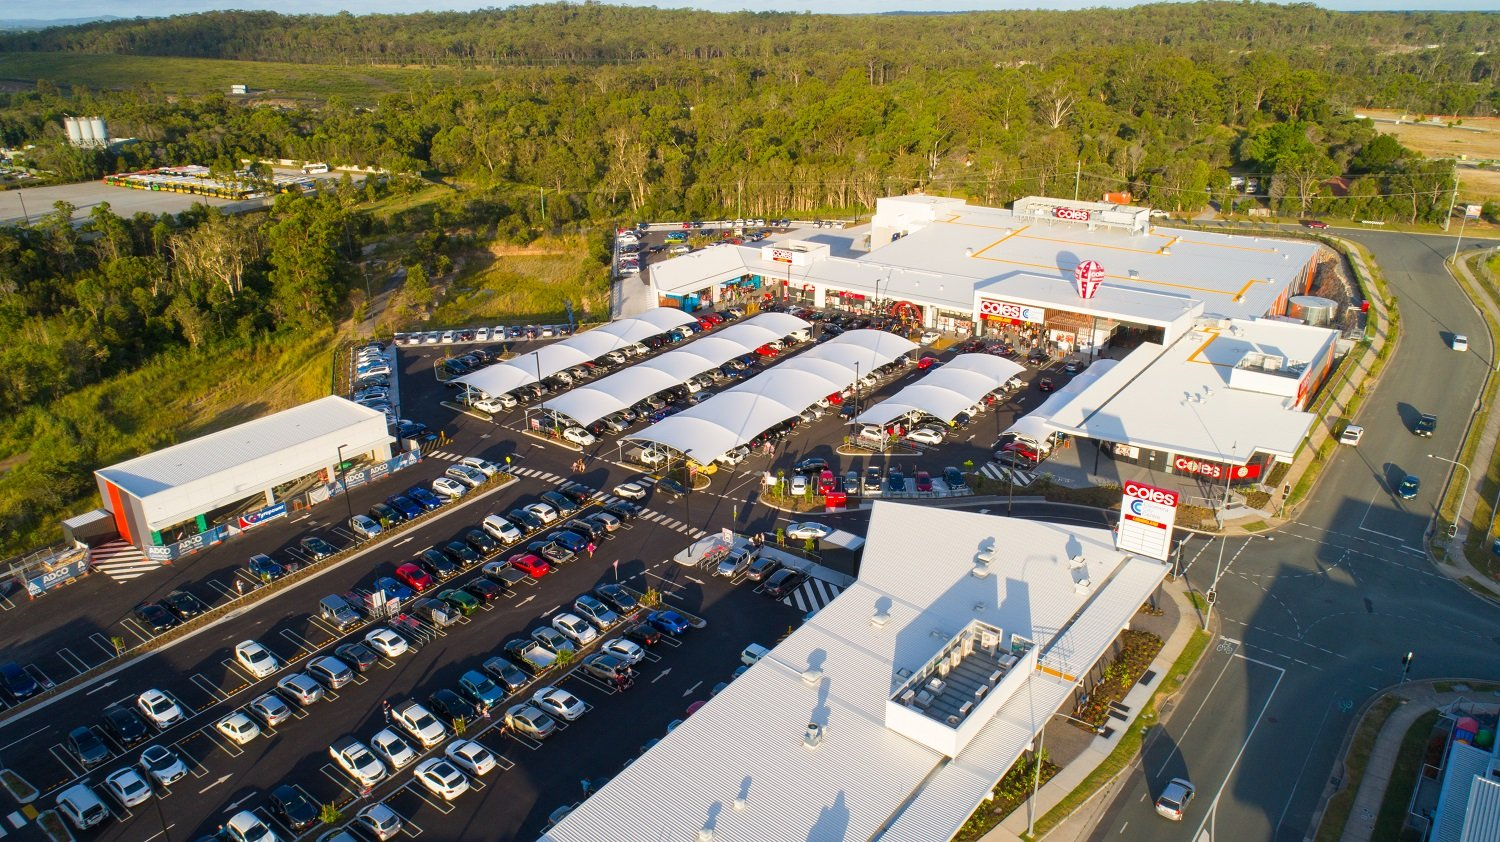 COOMERA CITY CENTRE RETAIL: ONE OF THE BEST, IF NOT THE BEST RETAIL LOCATION SPA